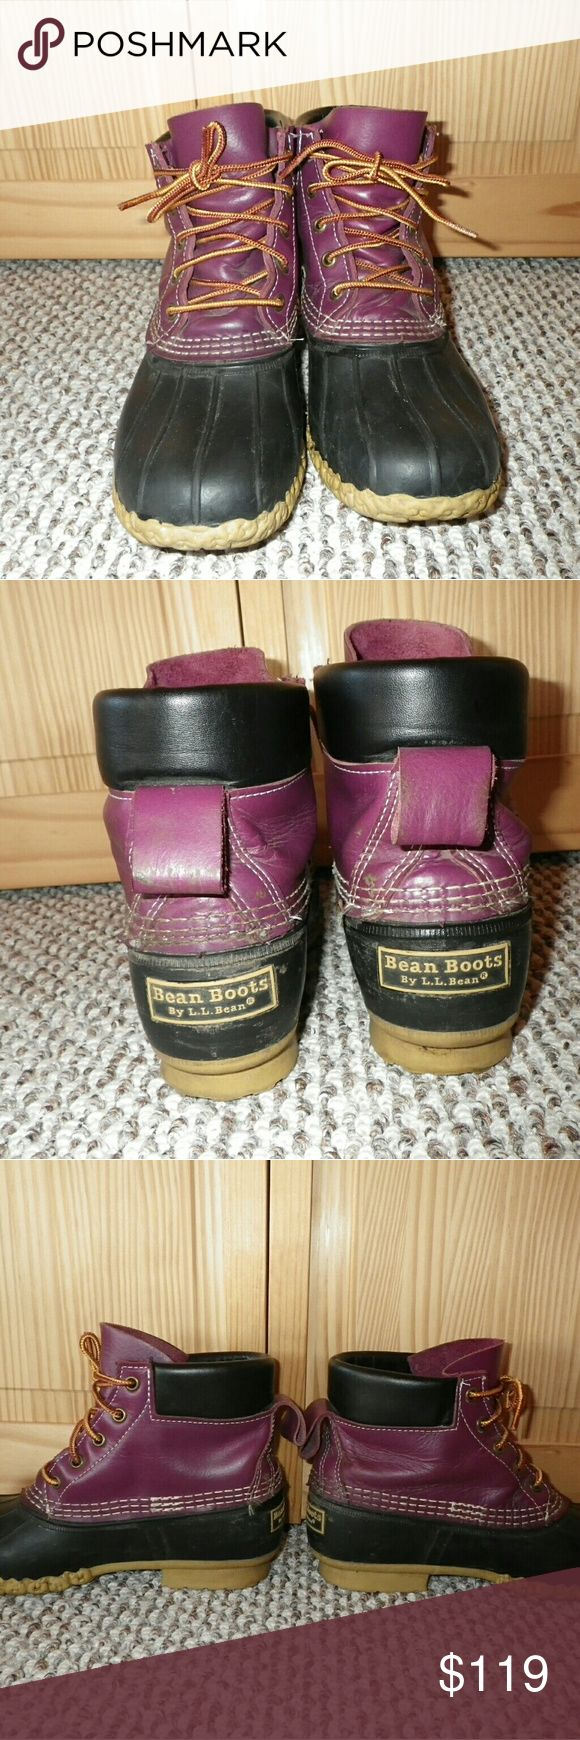 "◆◆FLASH SALE◆◆ LL Bean Boots Purple Padded Collar Excellent condition.  Only worn a few times.  Padded collar is more comfy around the ankles than regular styling.  Not 100% set on selling these but I'm listing them anyways.  We shall see!  This color is no longer made in a 6"" padded collar...limited edition. L.L. Bean Shoes Winter & Rain Boots"